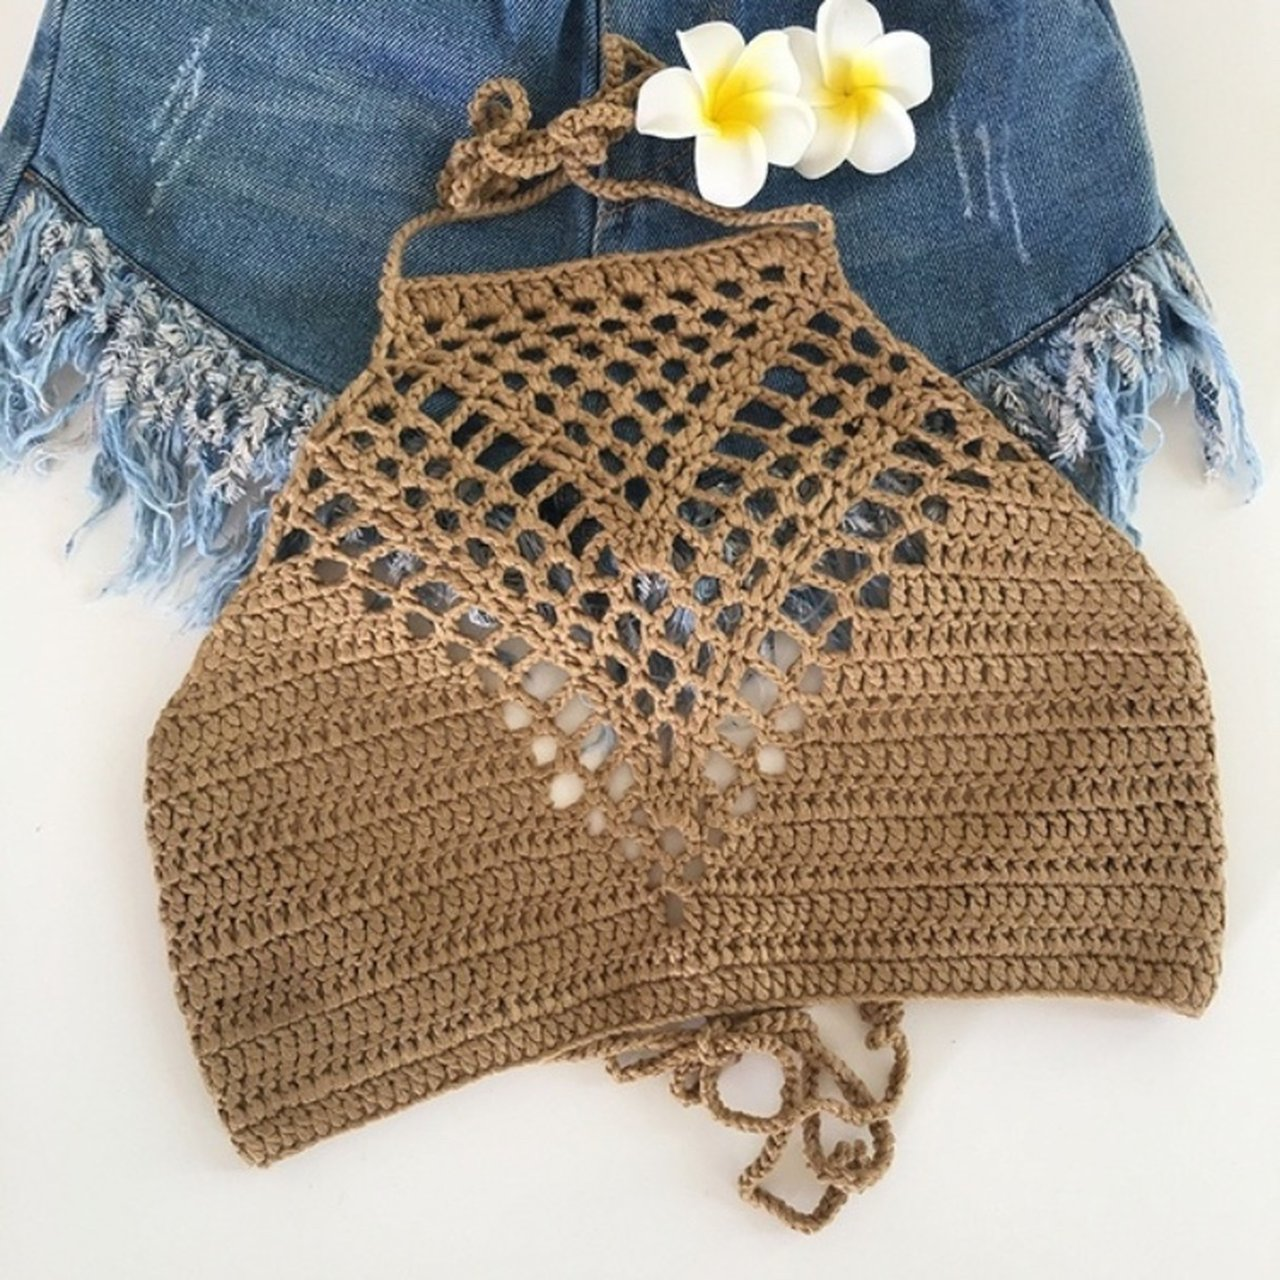 91083a4dc4c Barely worn khaki tan colored crochet high neck halter top depop jpg  1280x1280 Halter top crochet